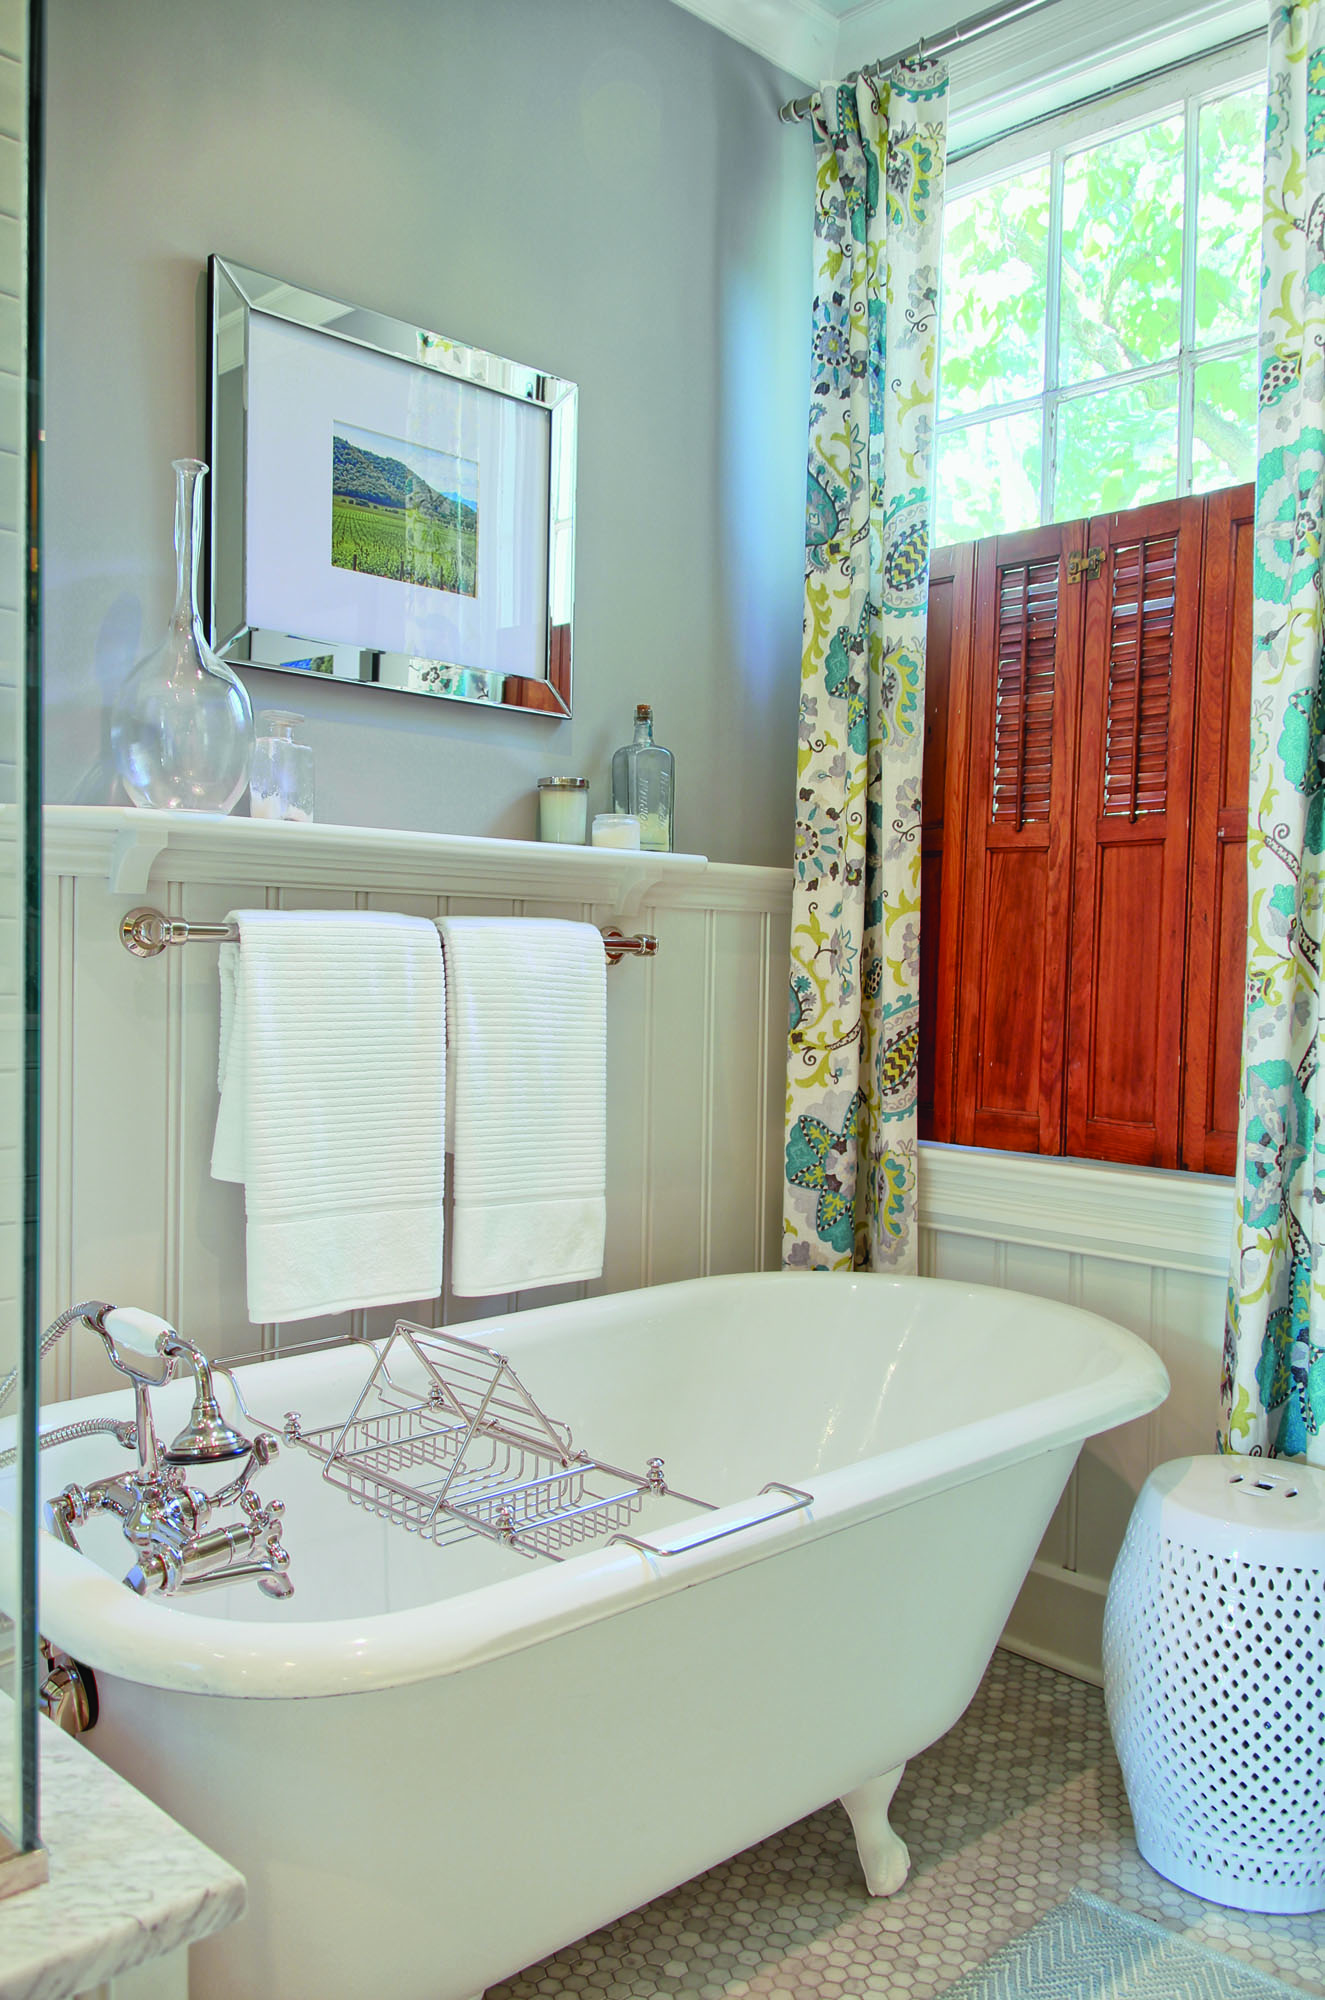 Designing A Timeless Bathdesigning A Timeless Bath Old